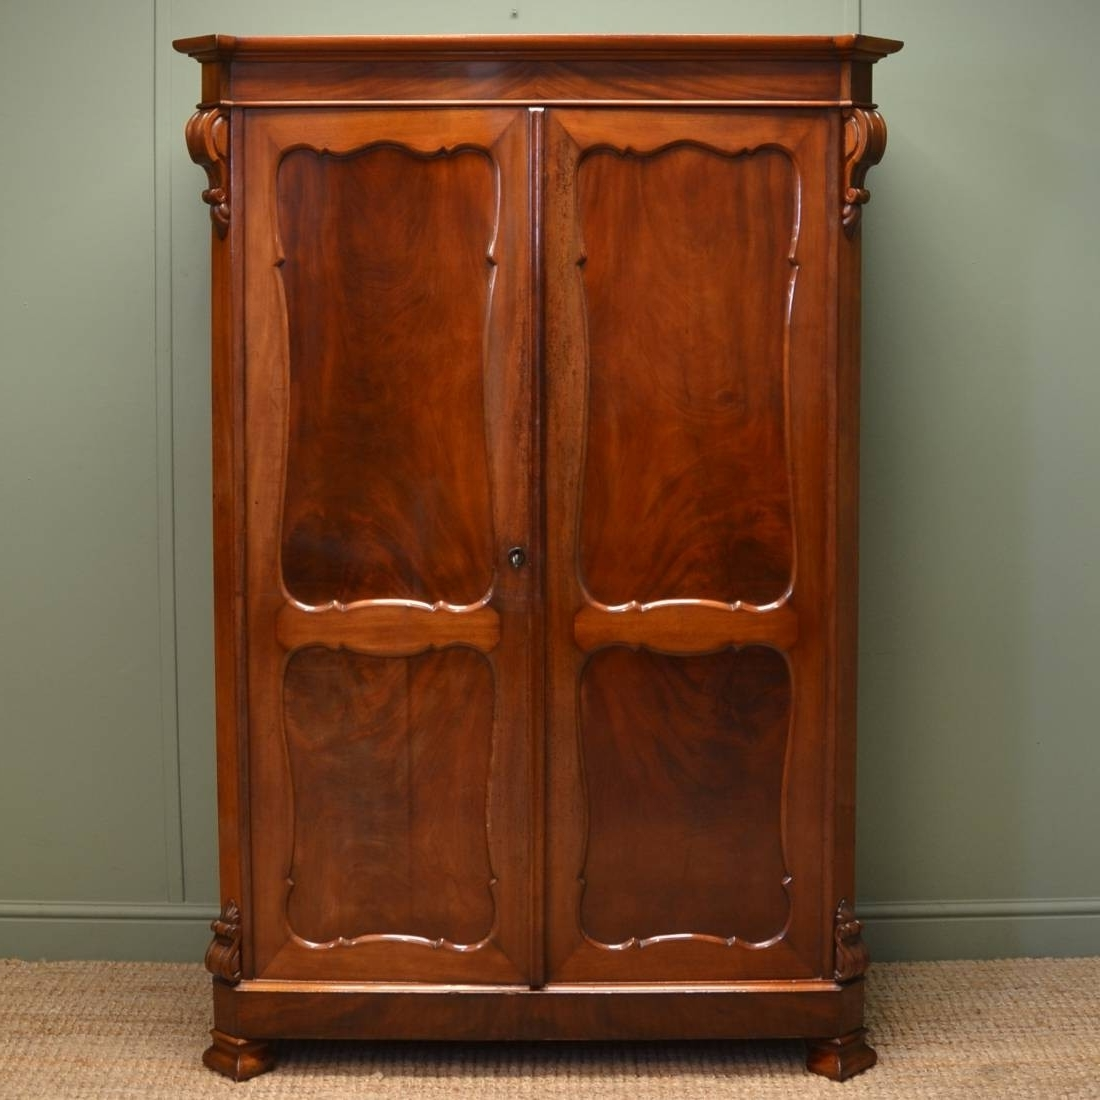 Dark Wood Wardrobes With Drawers Pertaining To Widely Used Solid Dark Wood Wardrobes For Sale White Wardrobe With Drawers You (View 7 of 15)